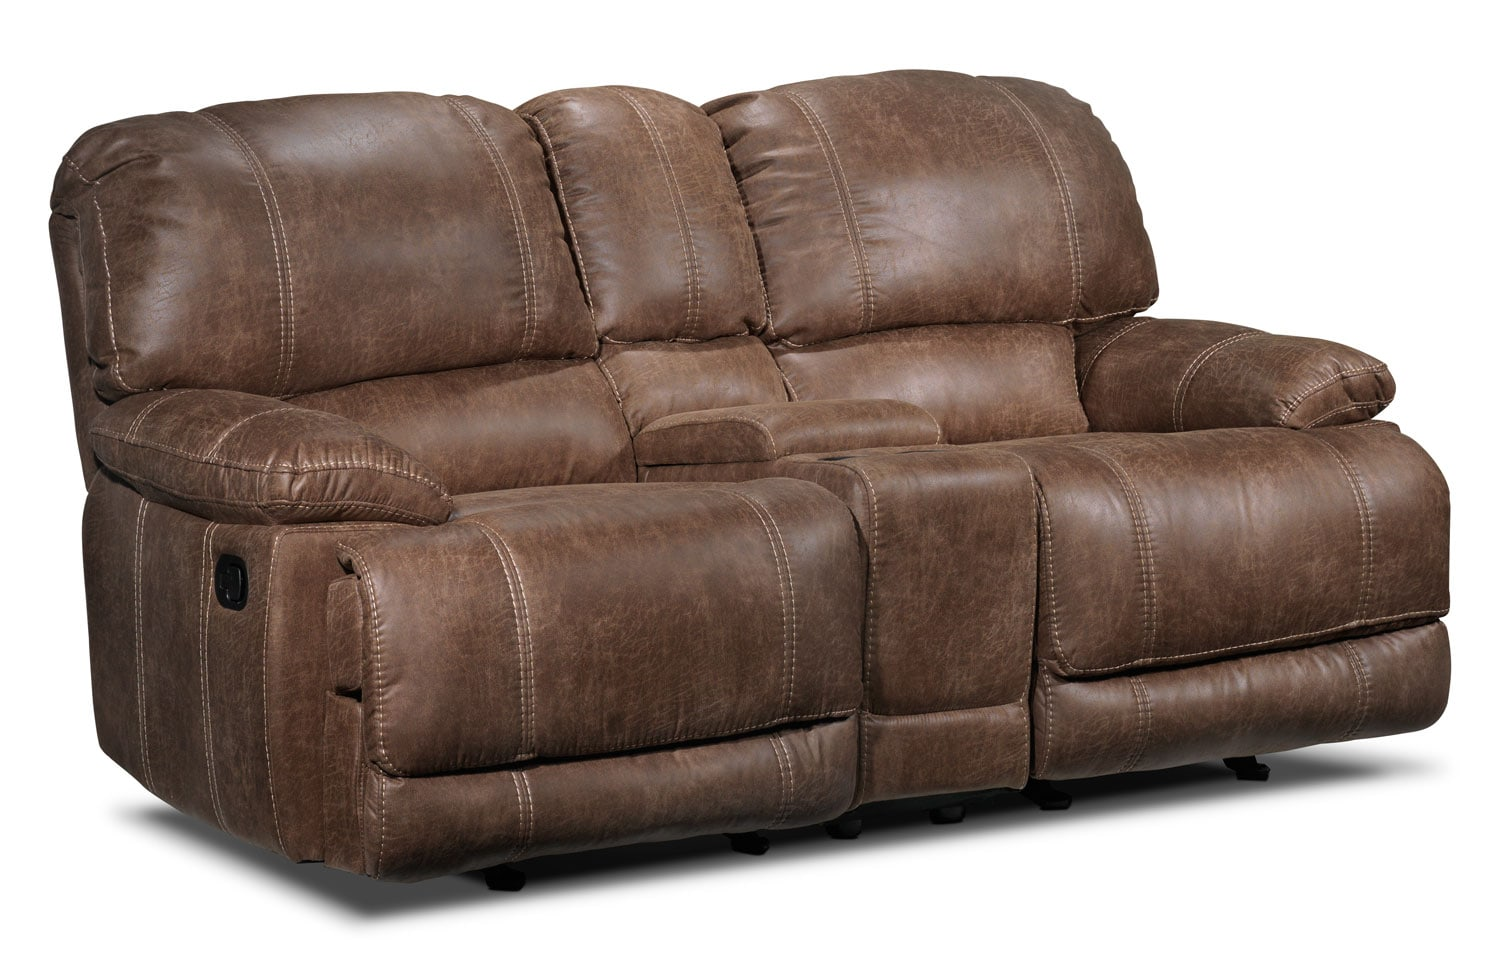 Durango reclining loveseat w console saddle brown leon 39 s Reclining loveseat with center console